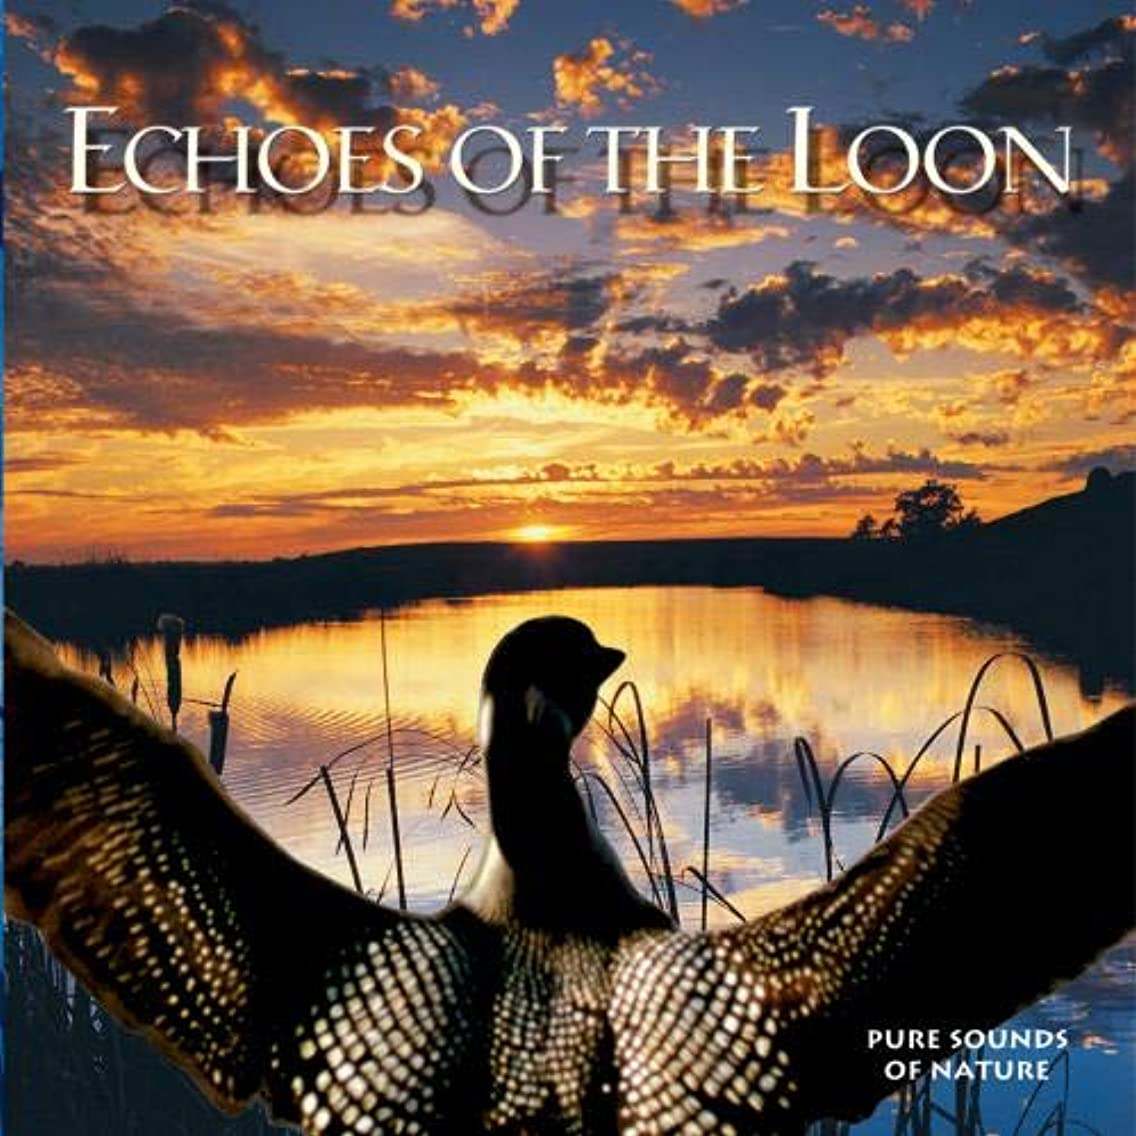 Echoes of the Loon